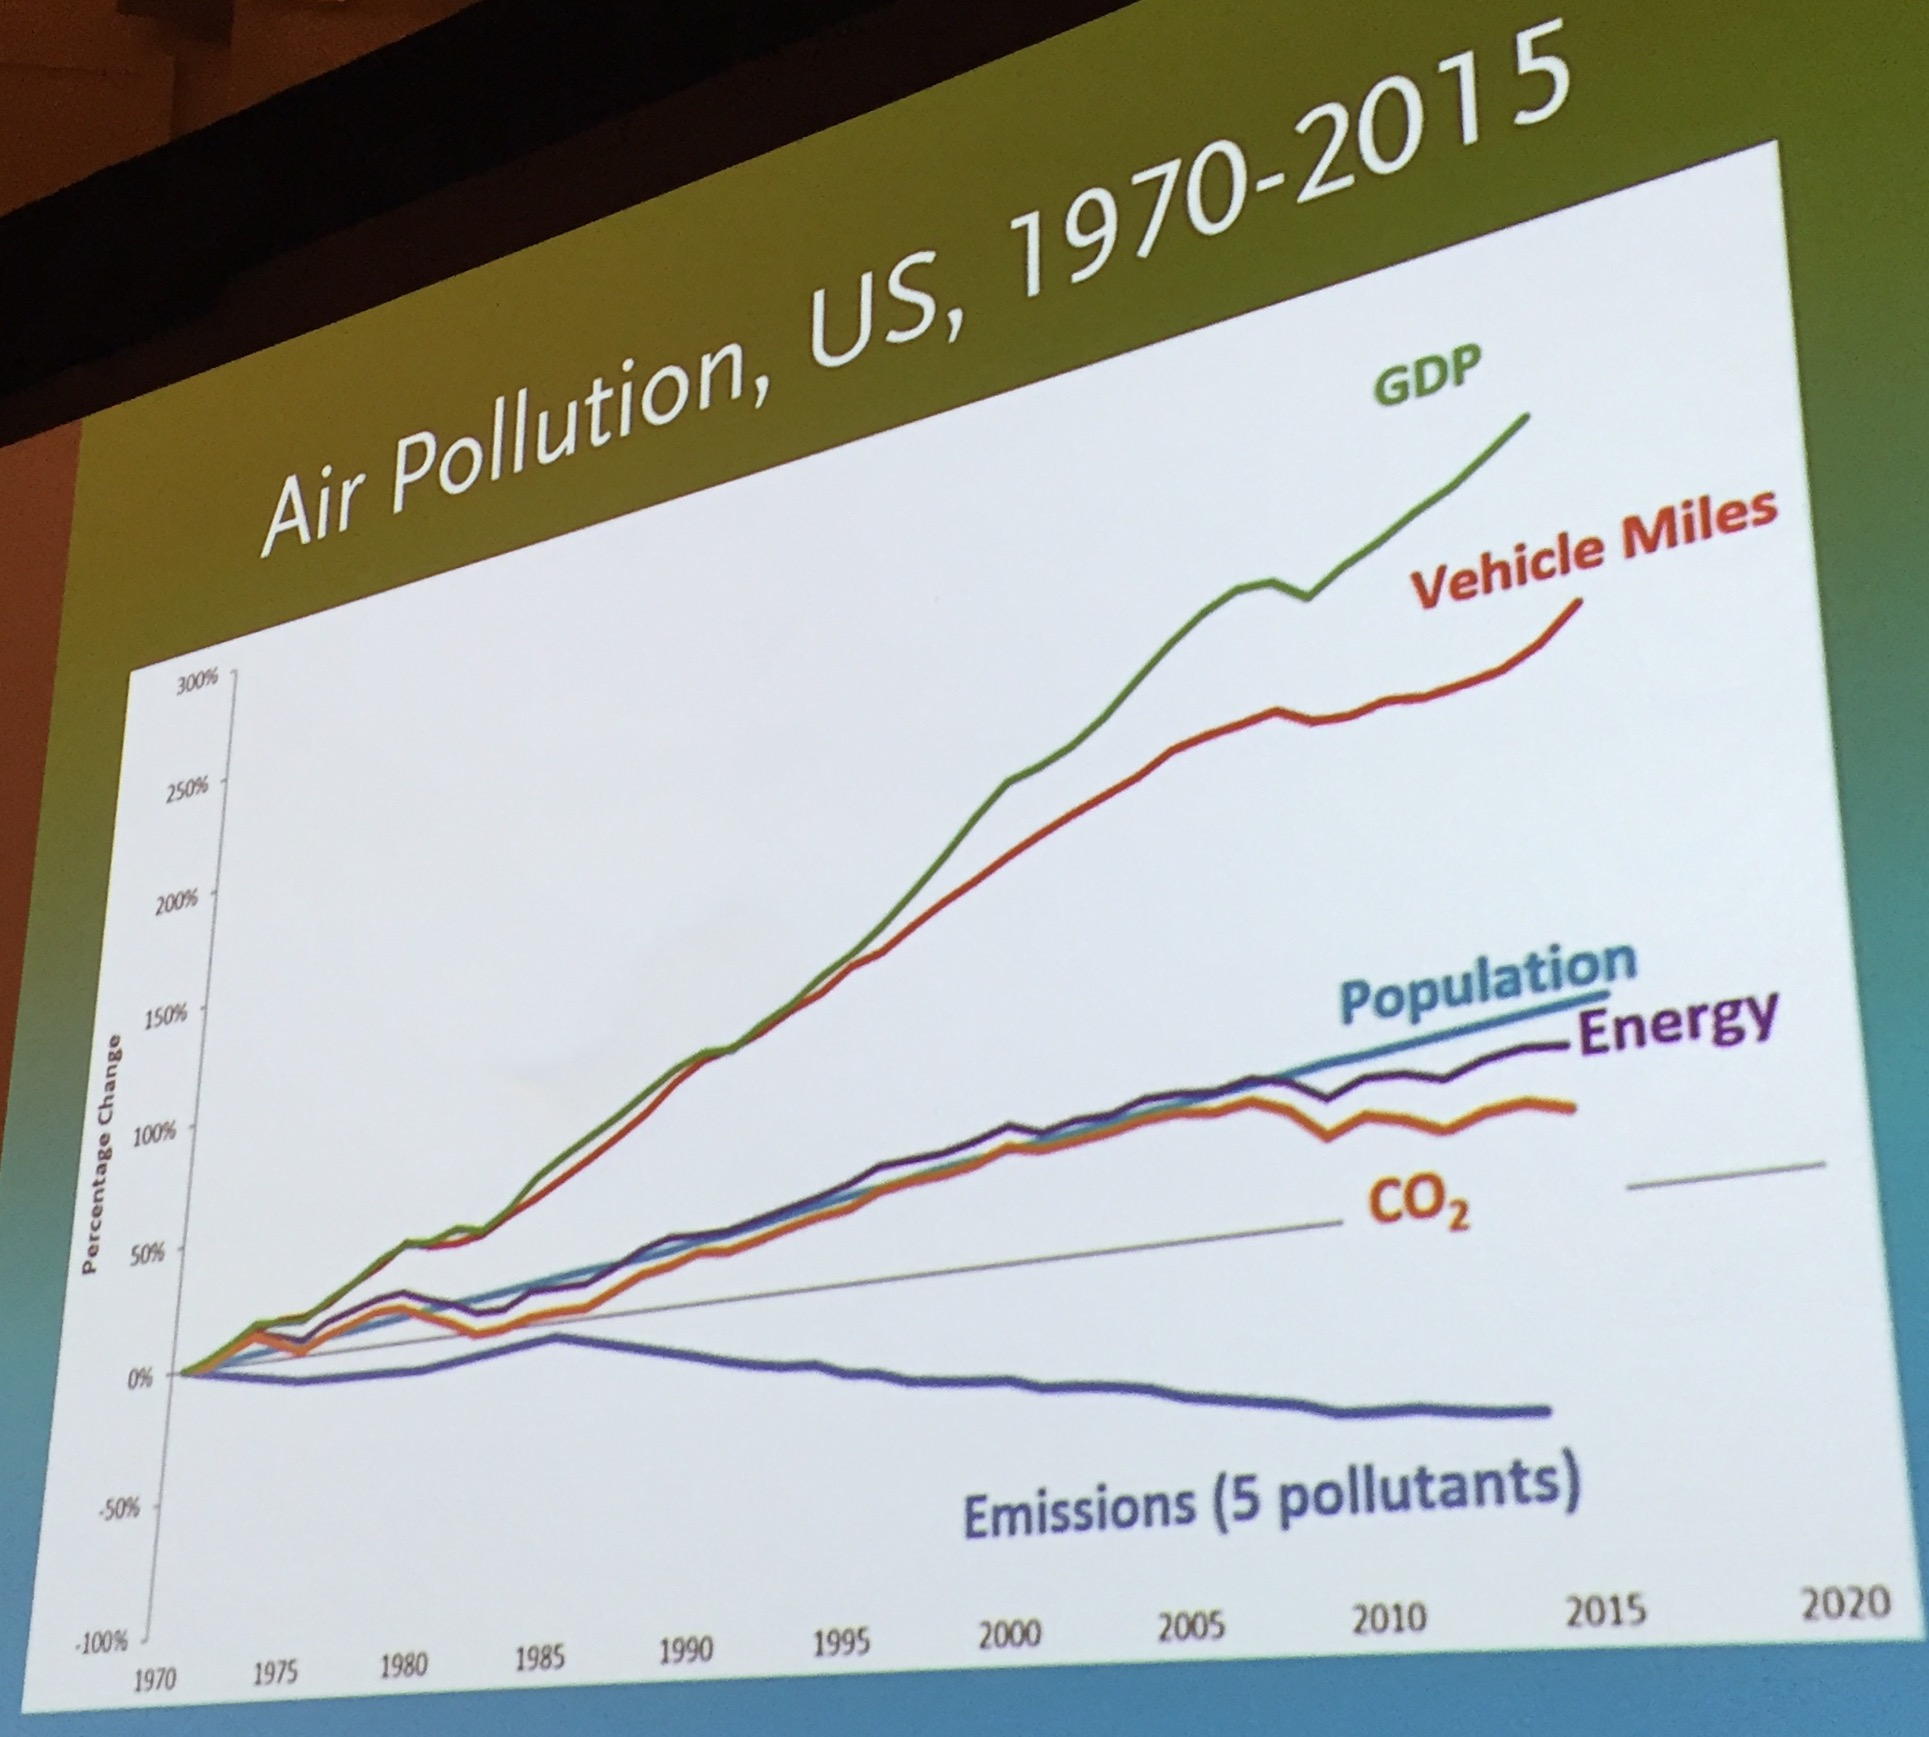 To Have Clean Air We Need Pro Human Environmentalists American Pollution Diagram 2015 In The United States Gdp Vehicle Miles Traveled And Population All Increased While Emission Of Five Different Pollutants Decreased